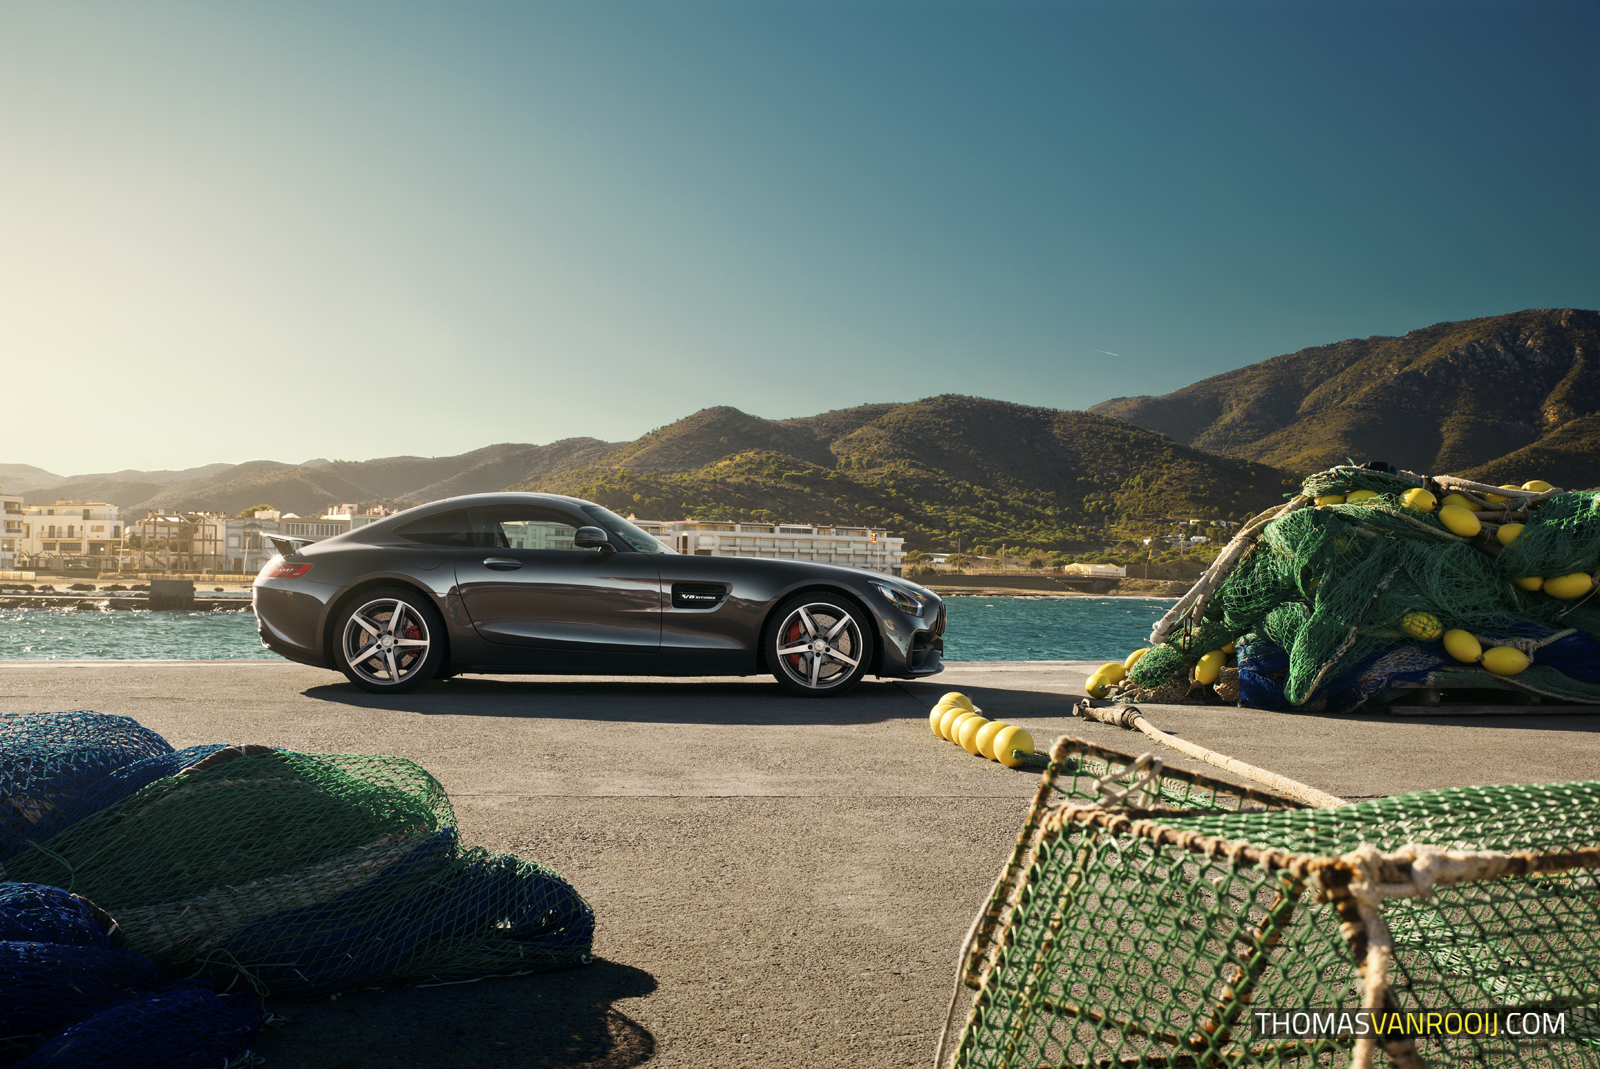 Mercedes-AMG GT S Roadtrip Thomas van Rooij Photography